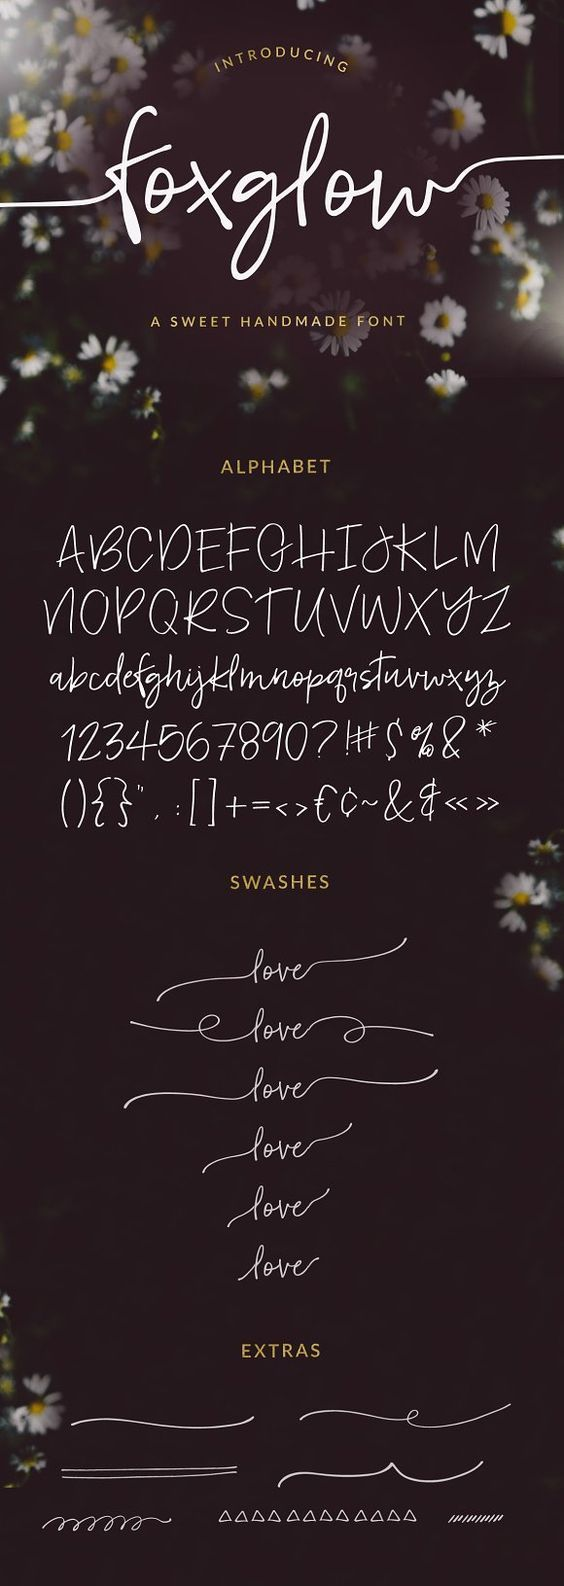 Meet Foxglow... a fun, handwritten font, complete alphabet with swashes and